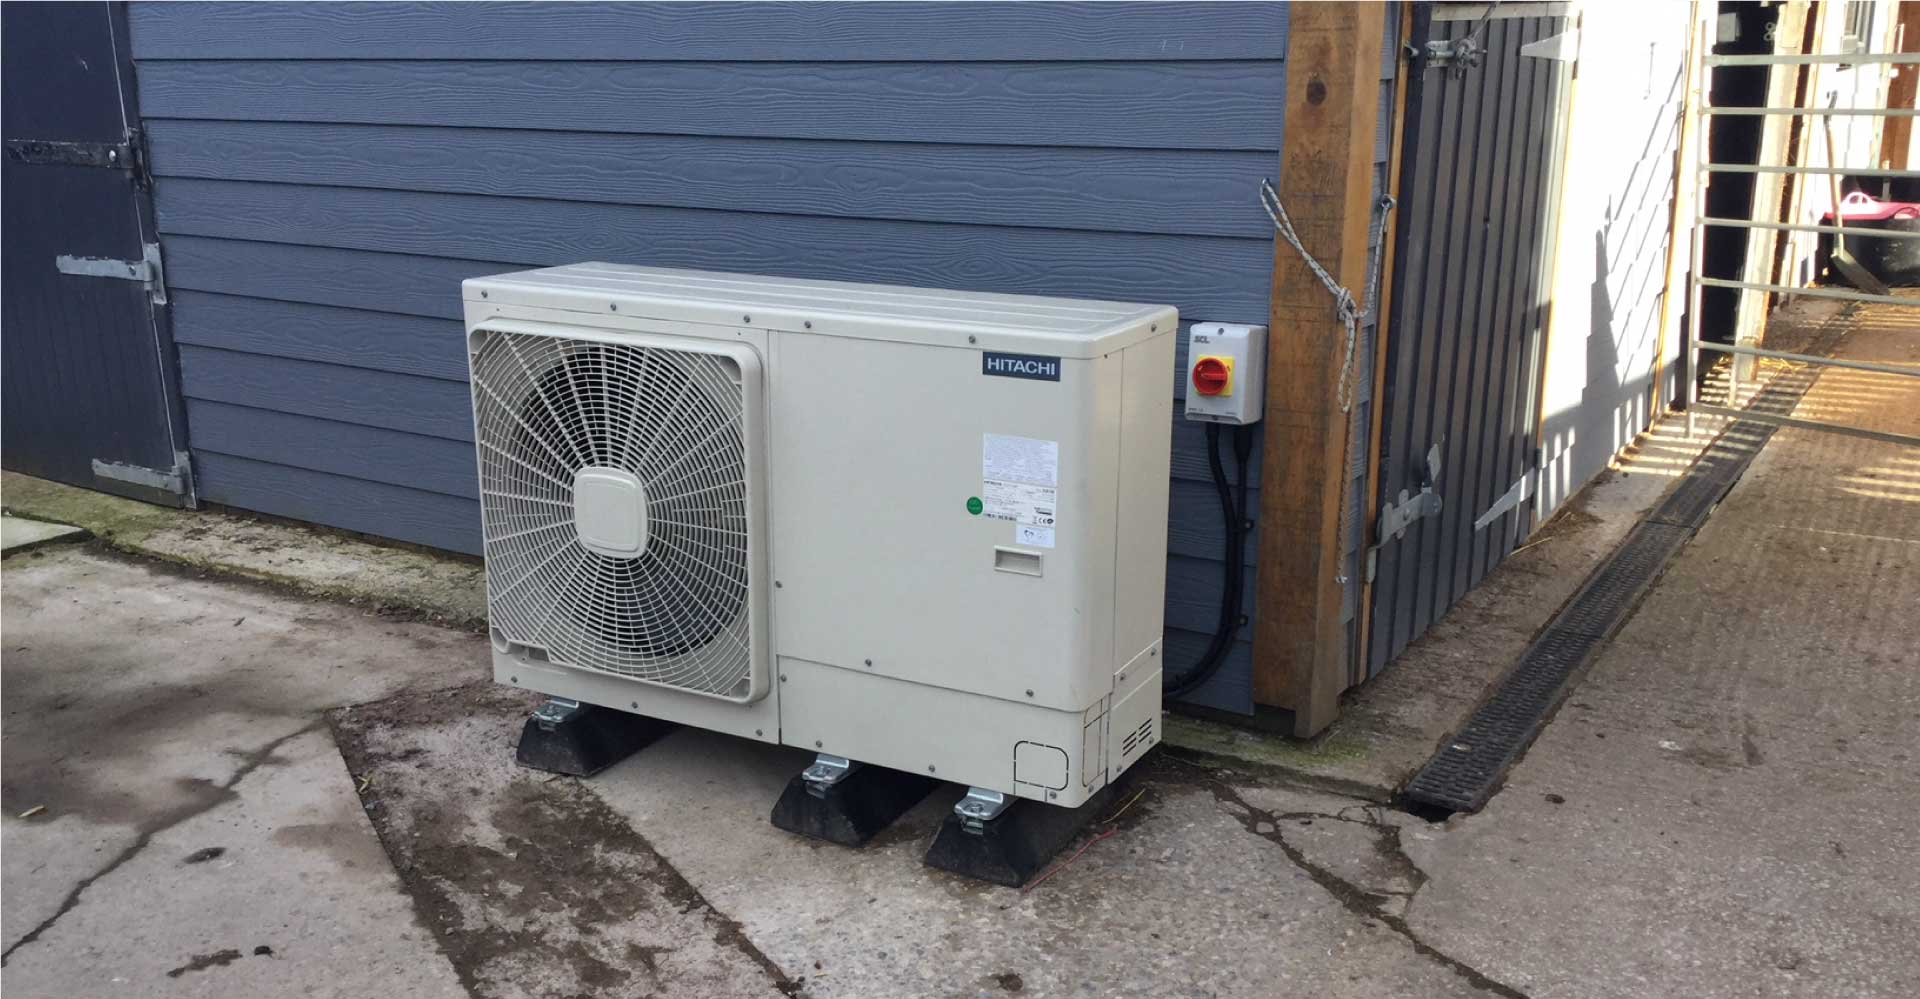 Hitachi 8kw Air Source Heat Pump For New Build House In